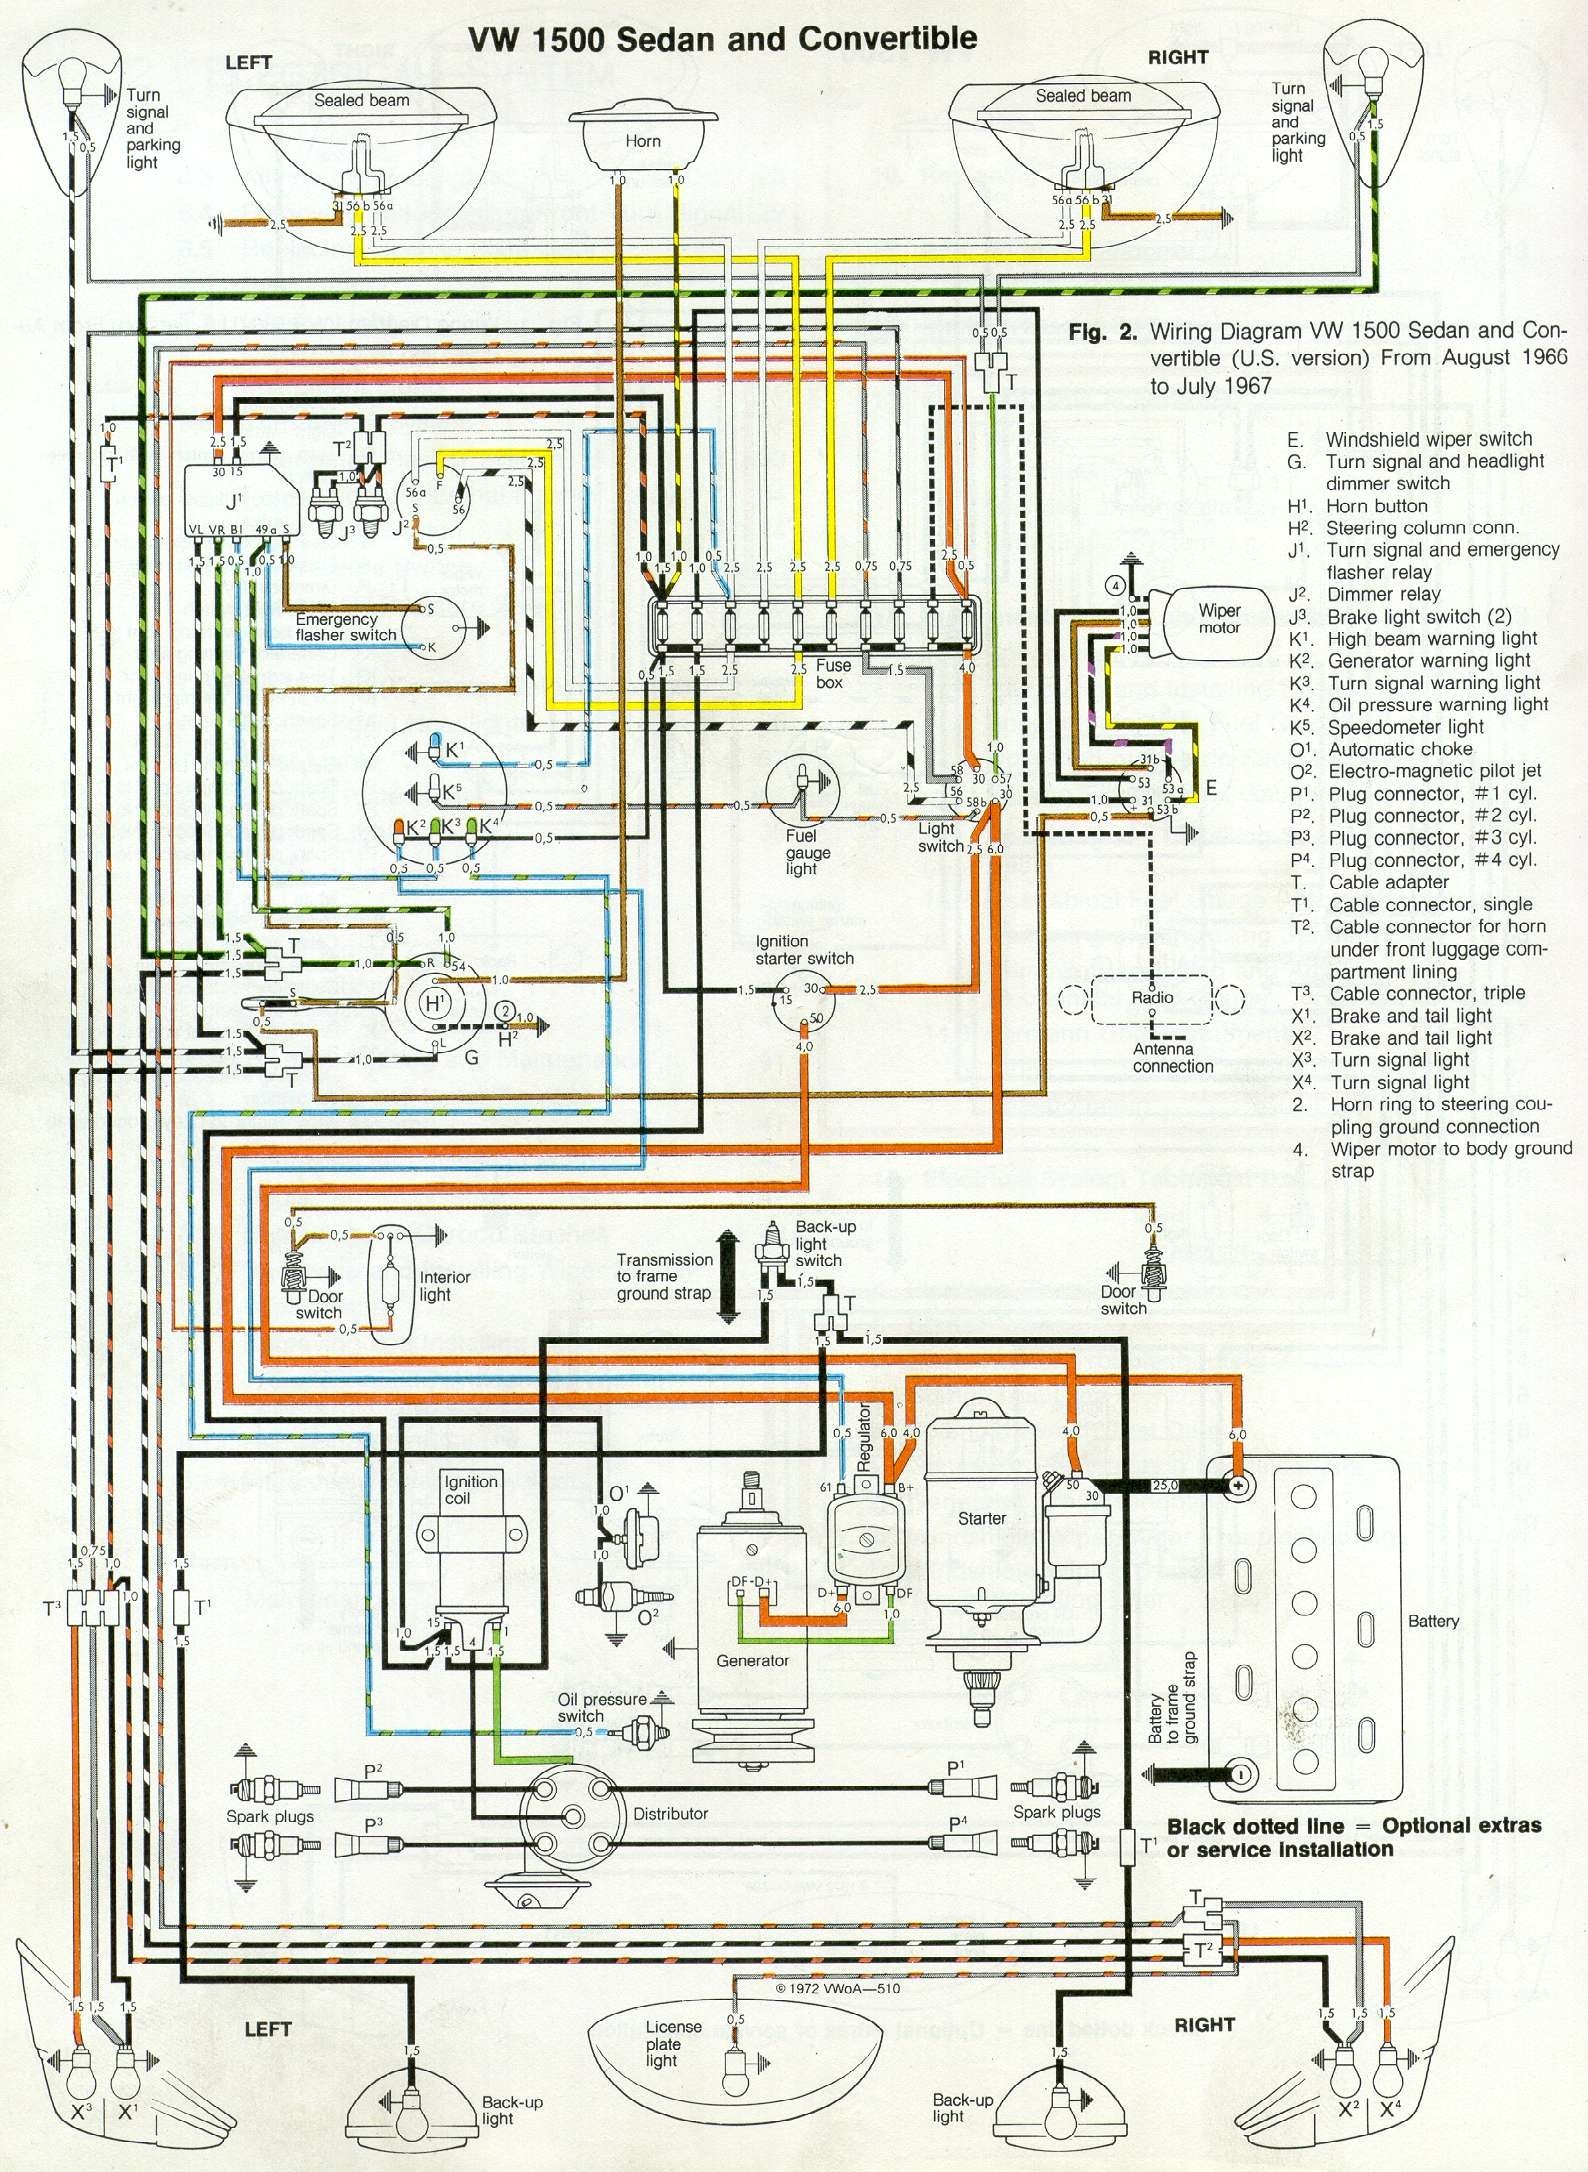 bug wiring diagram volkswagen bug wiring diagram images thesambacom 1998 VW Beetle Fuel Pump Relay and vw beetle wiring diagram vw beetle 66 and 67 vw beetle wiring diagram 1967 vw